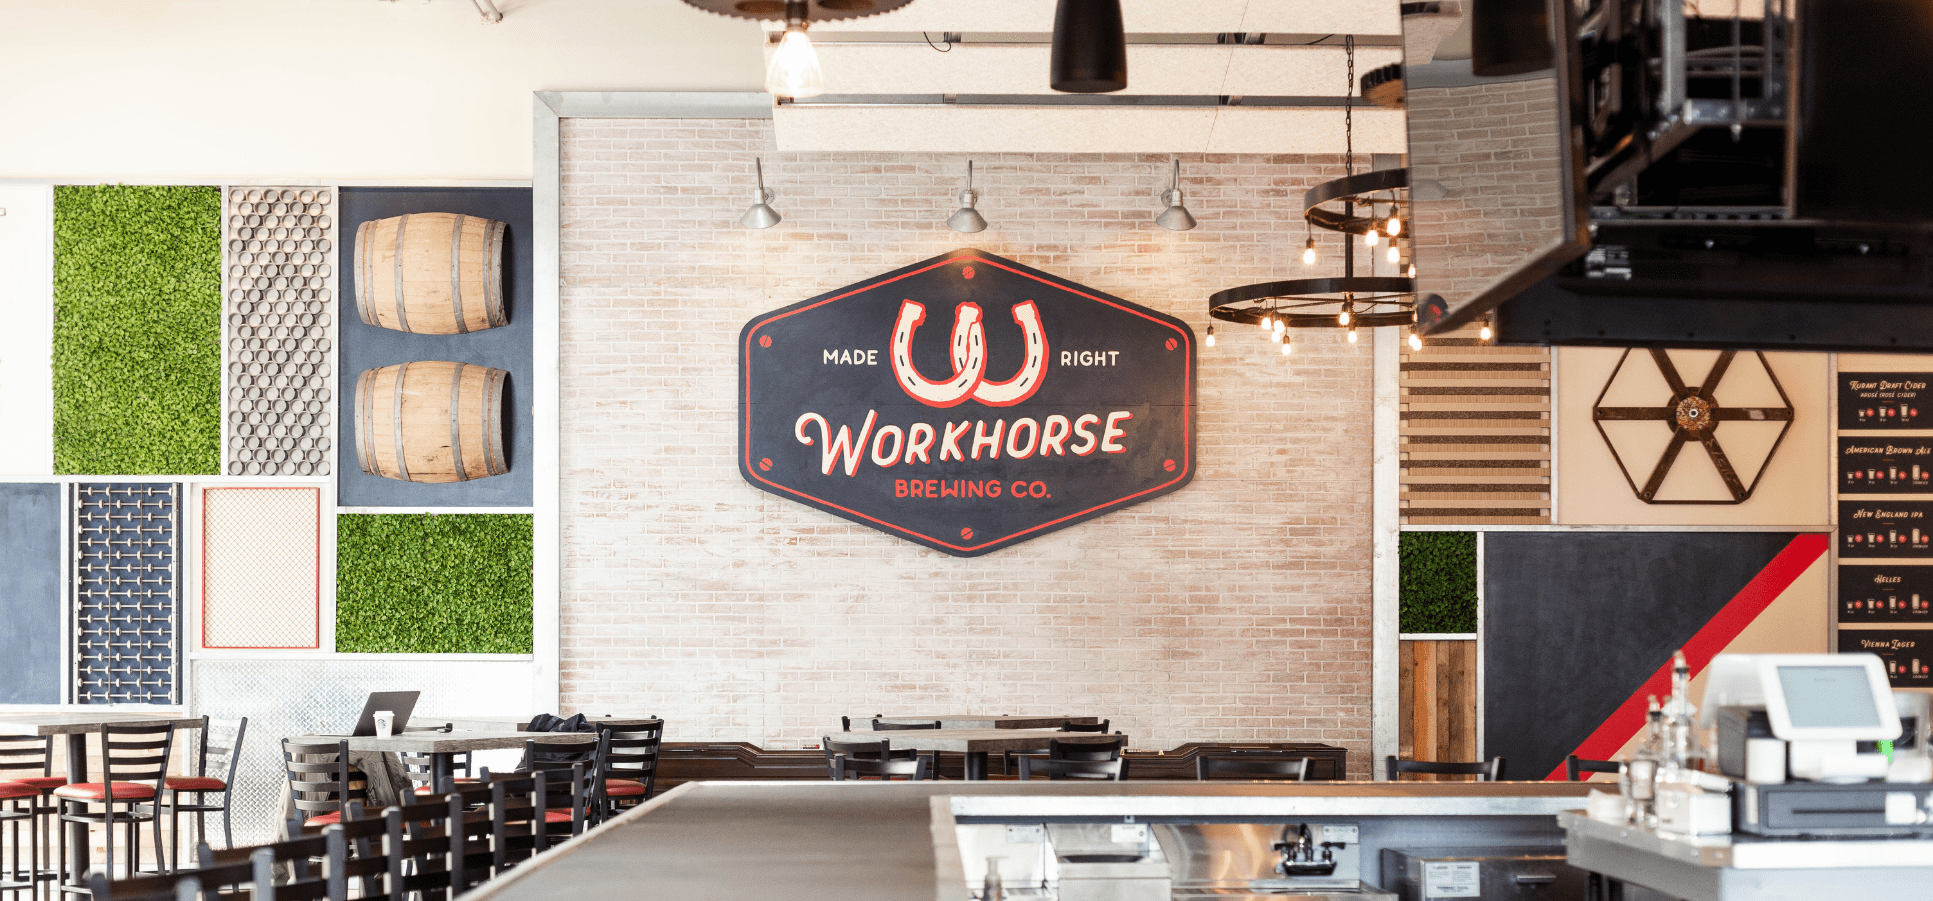 Workhorse Brewing Co.